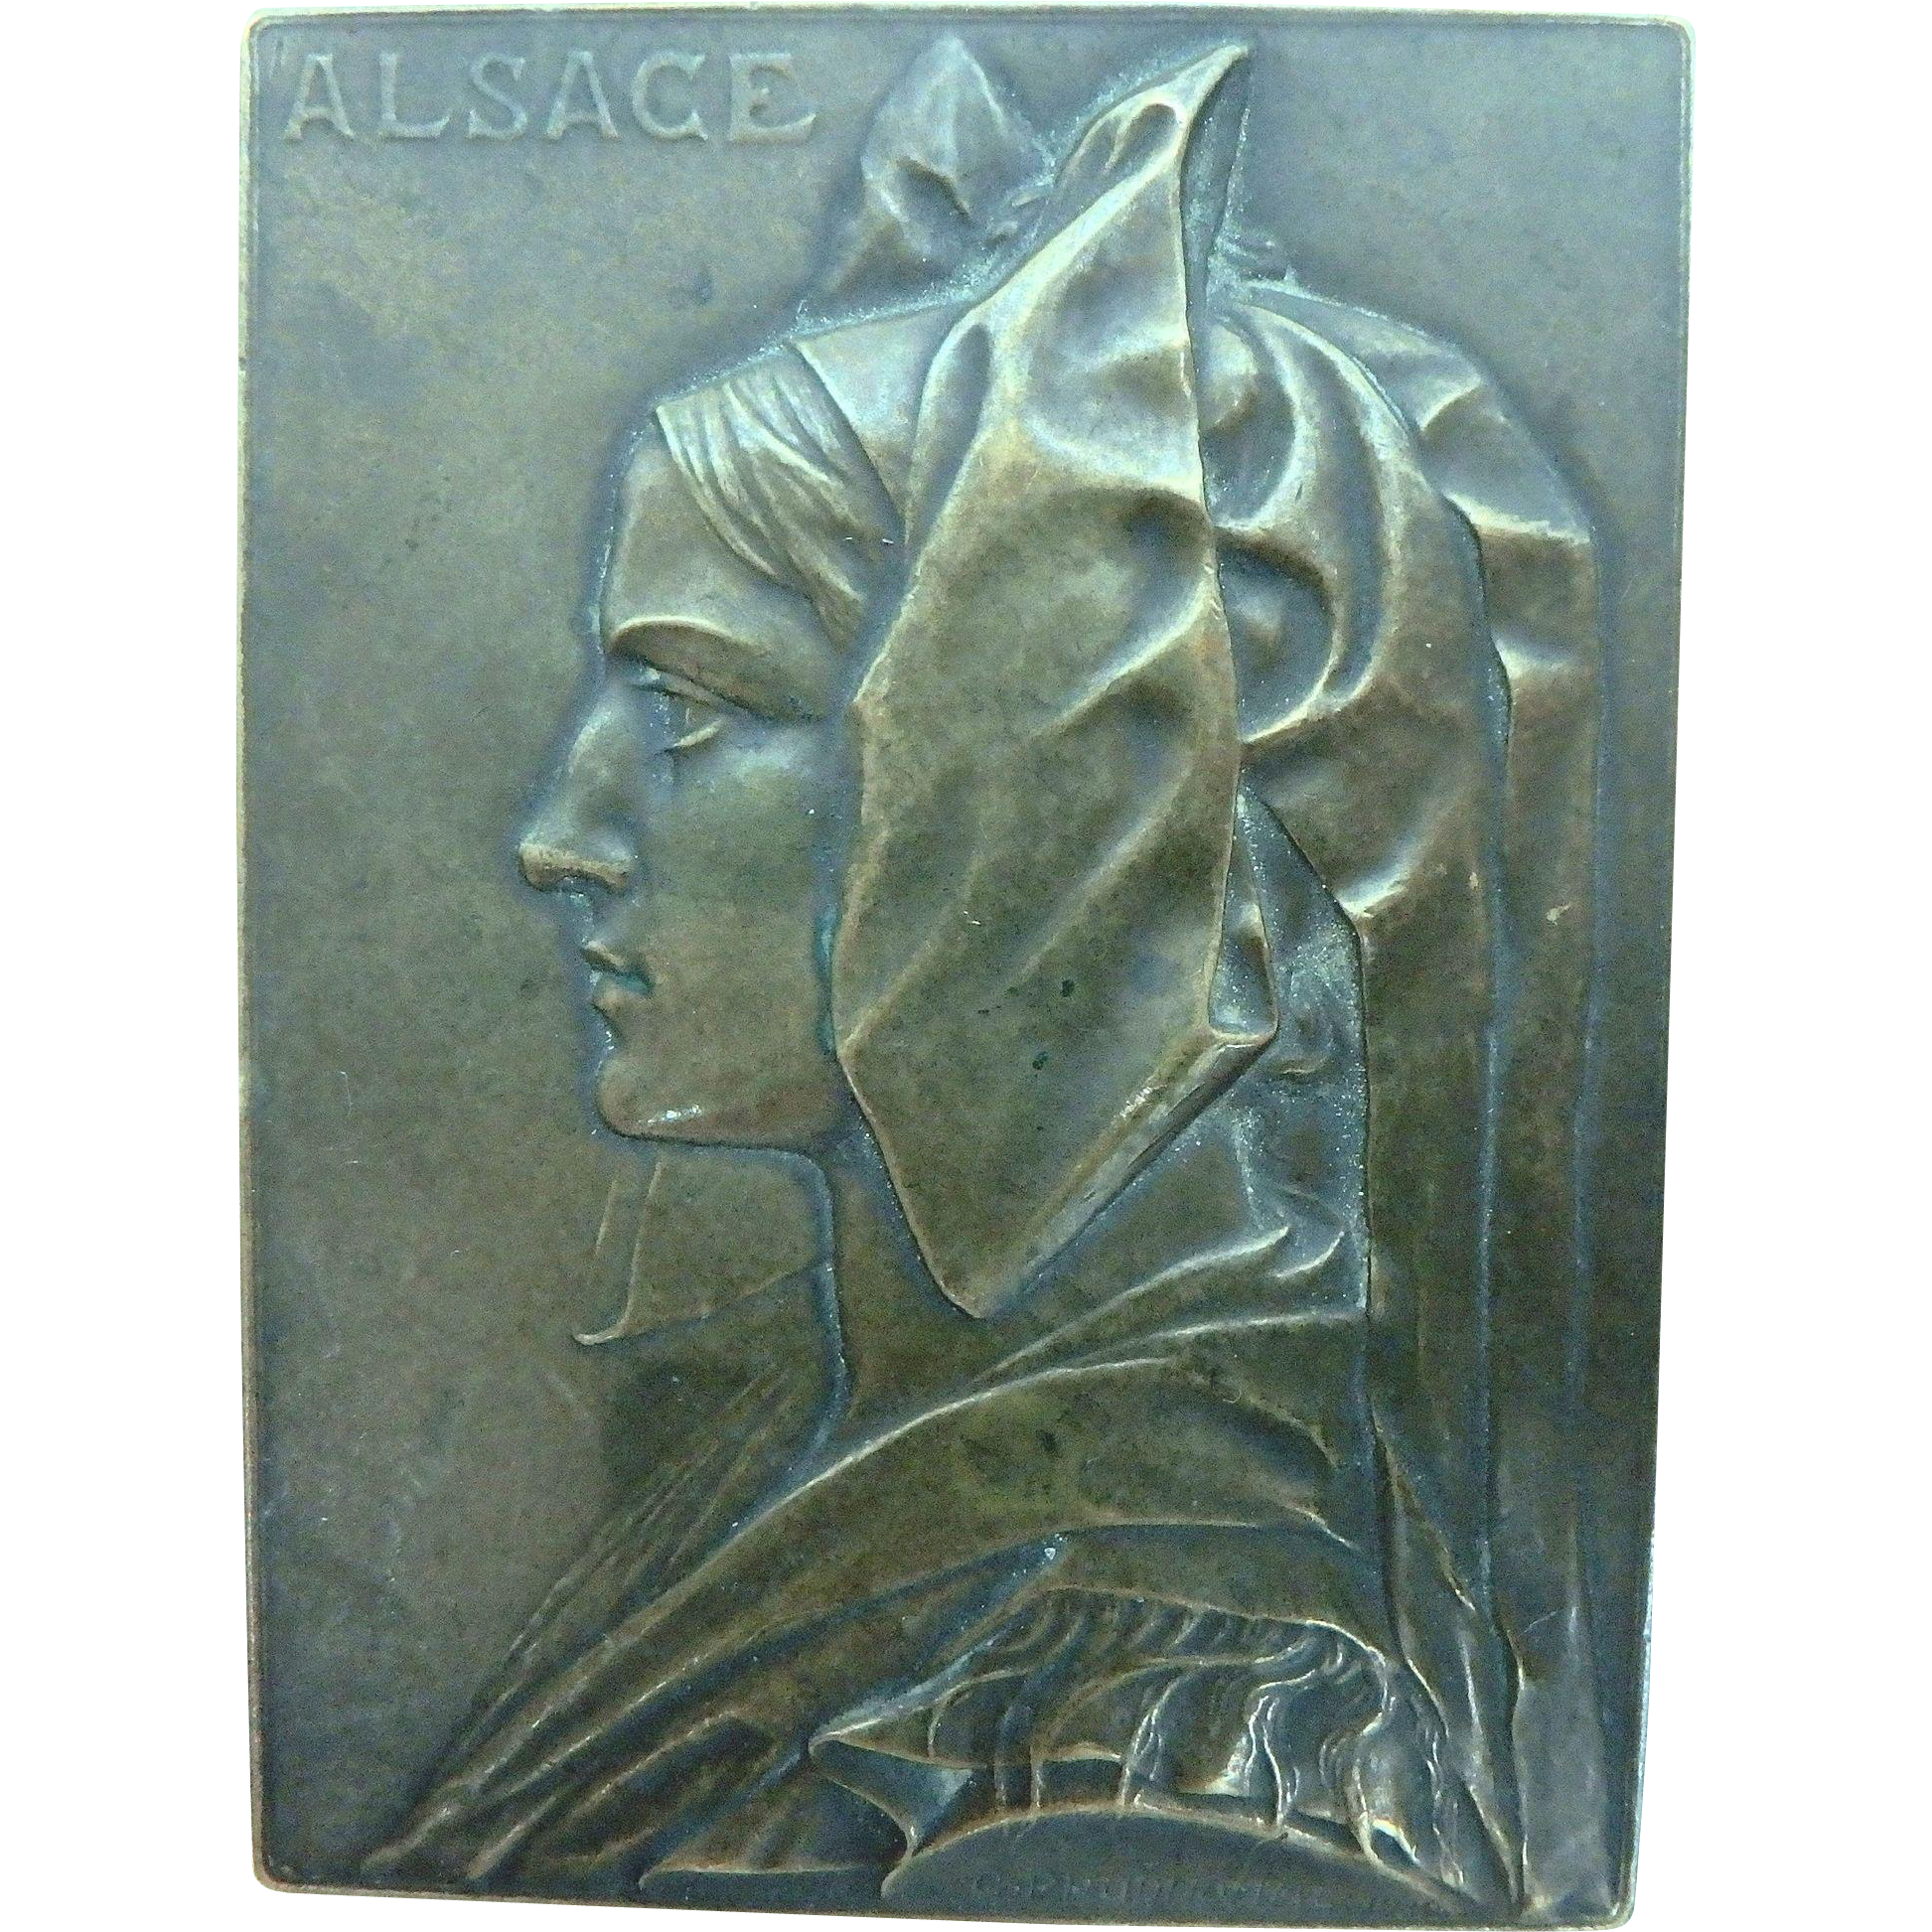 Vintage Bronze Alsace France WWI Bronze Medal by G. Prudhomme 1919